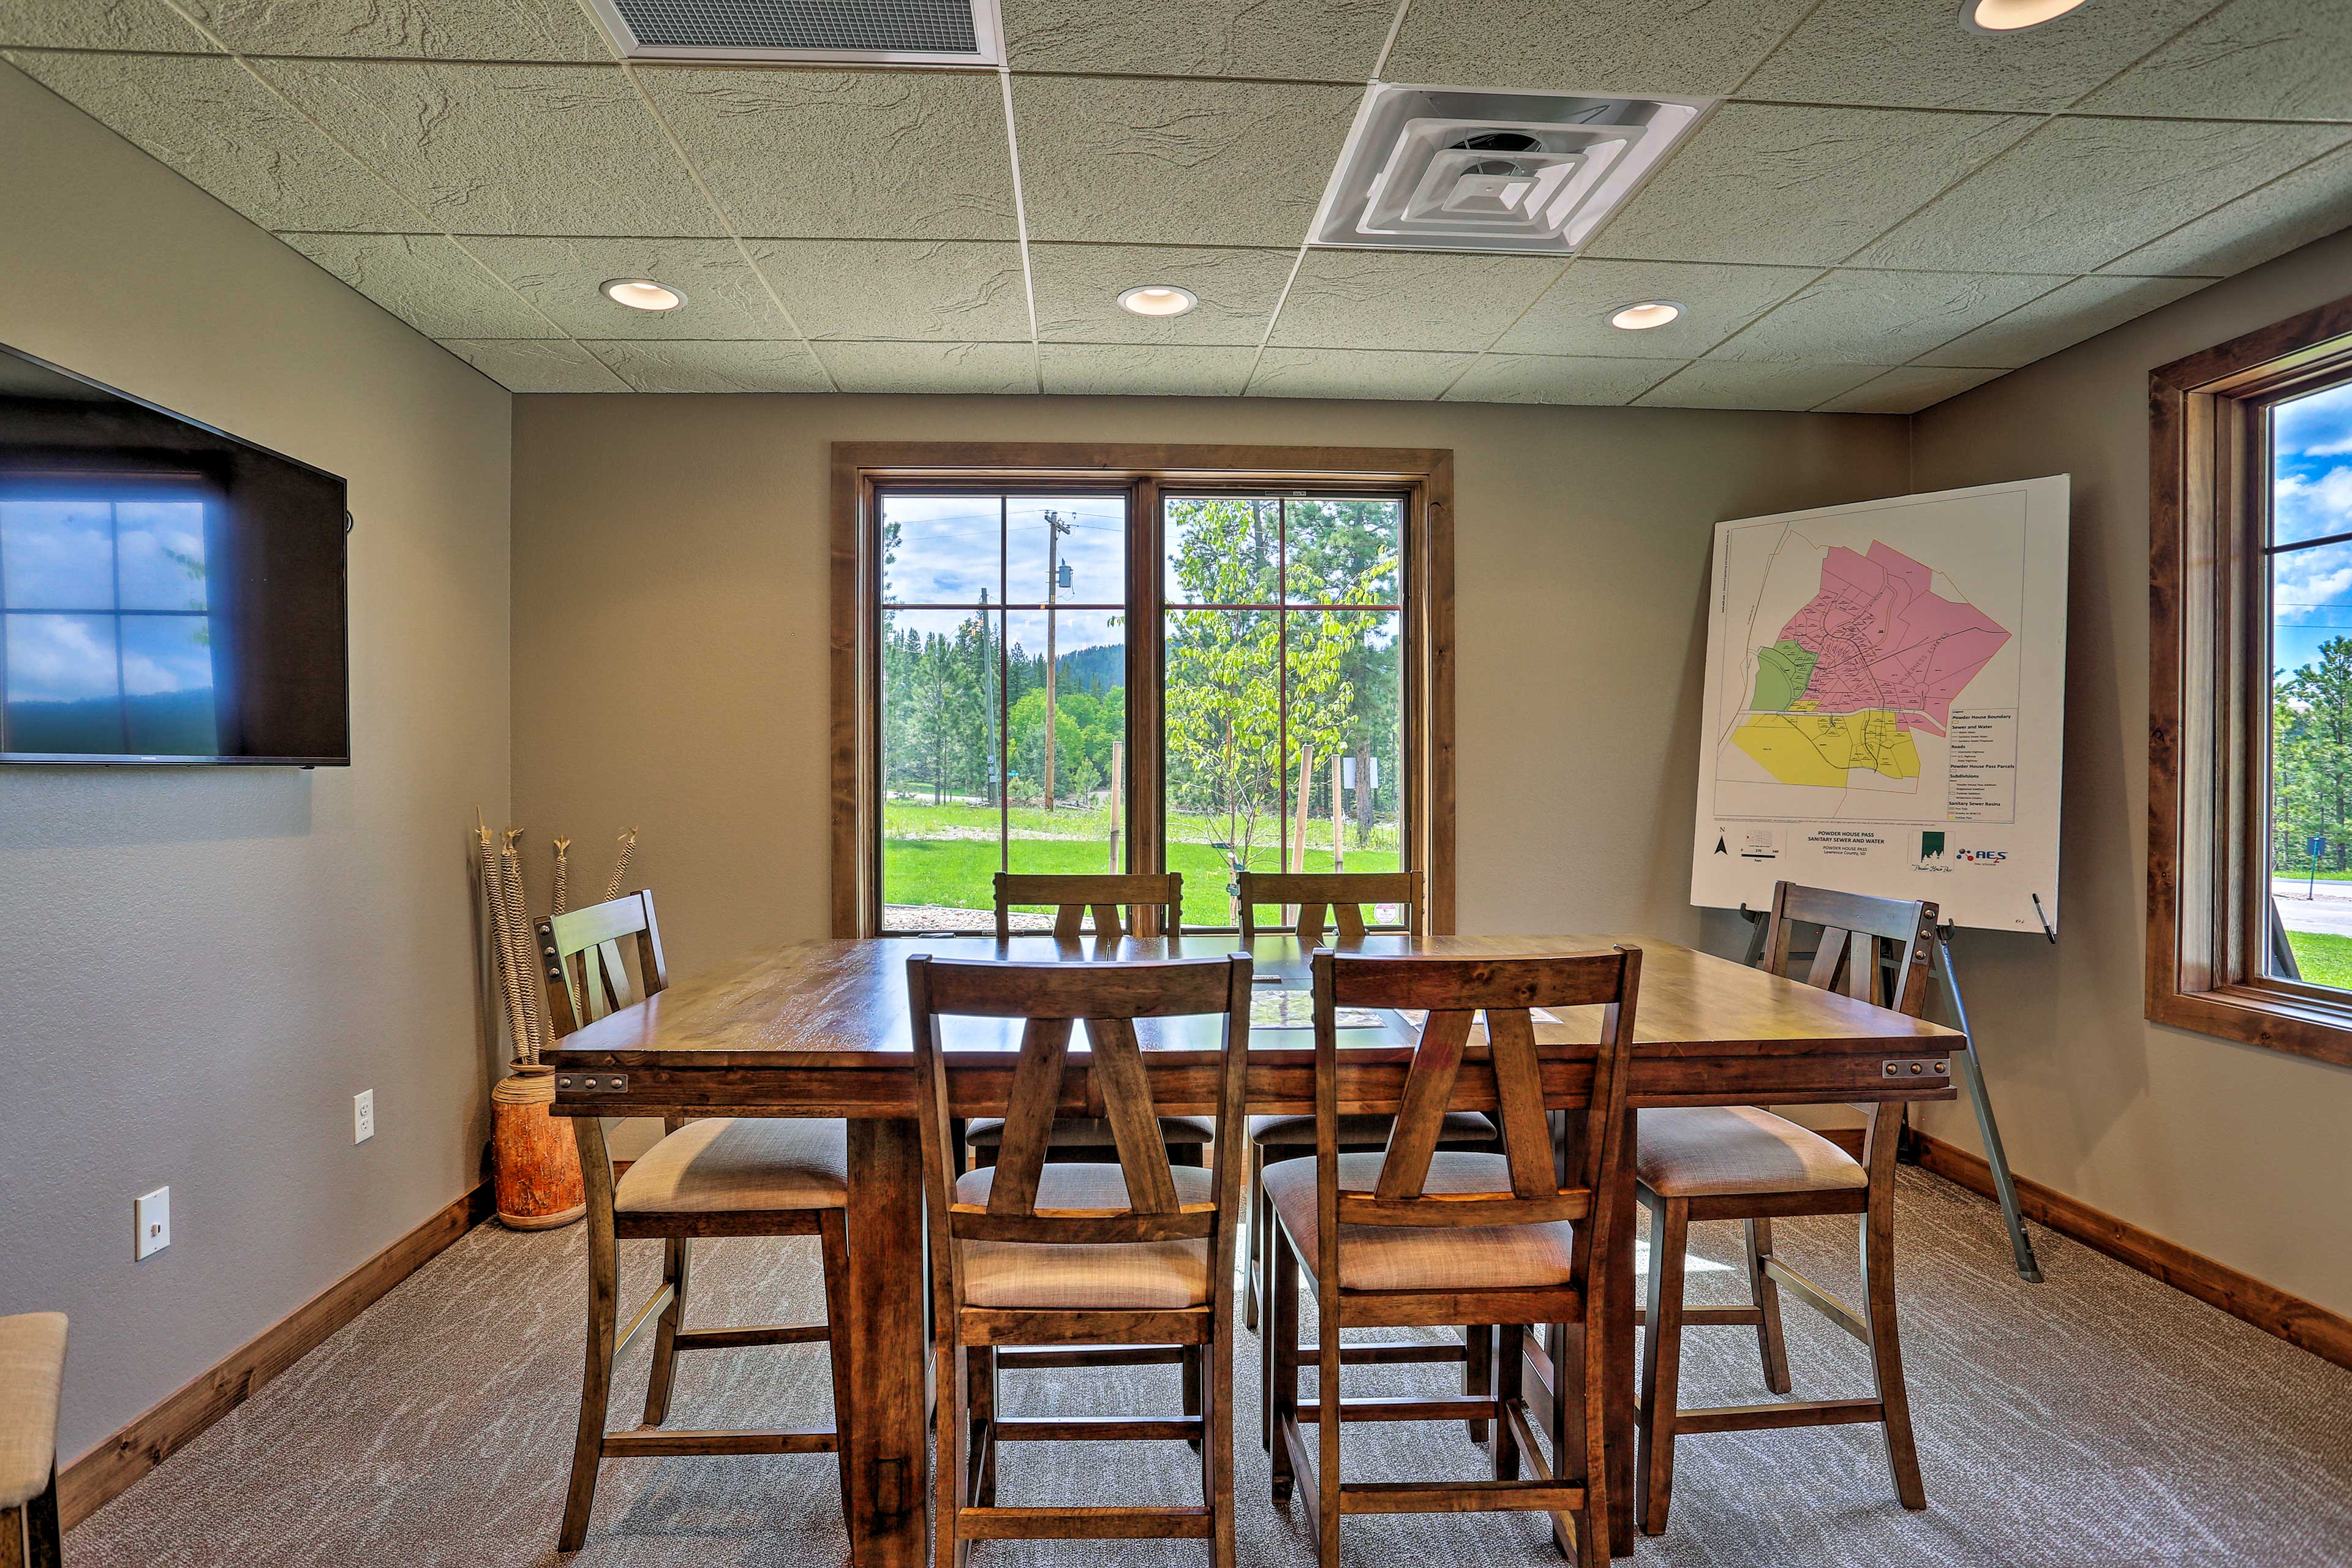 Small conference rooms help those traveling professionals!